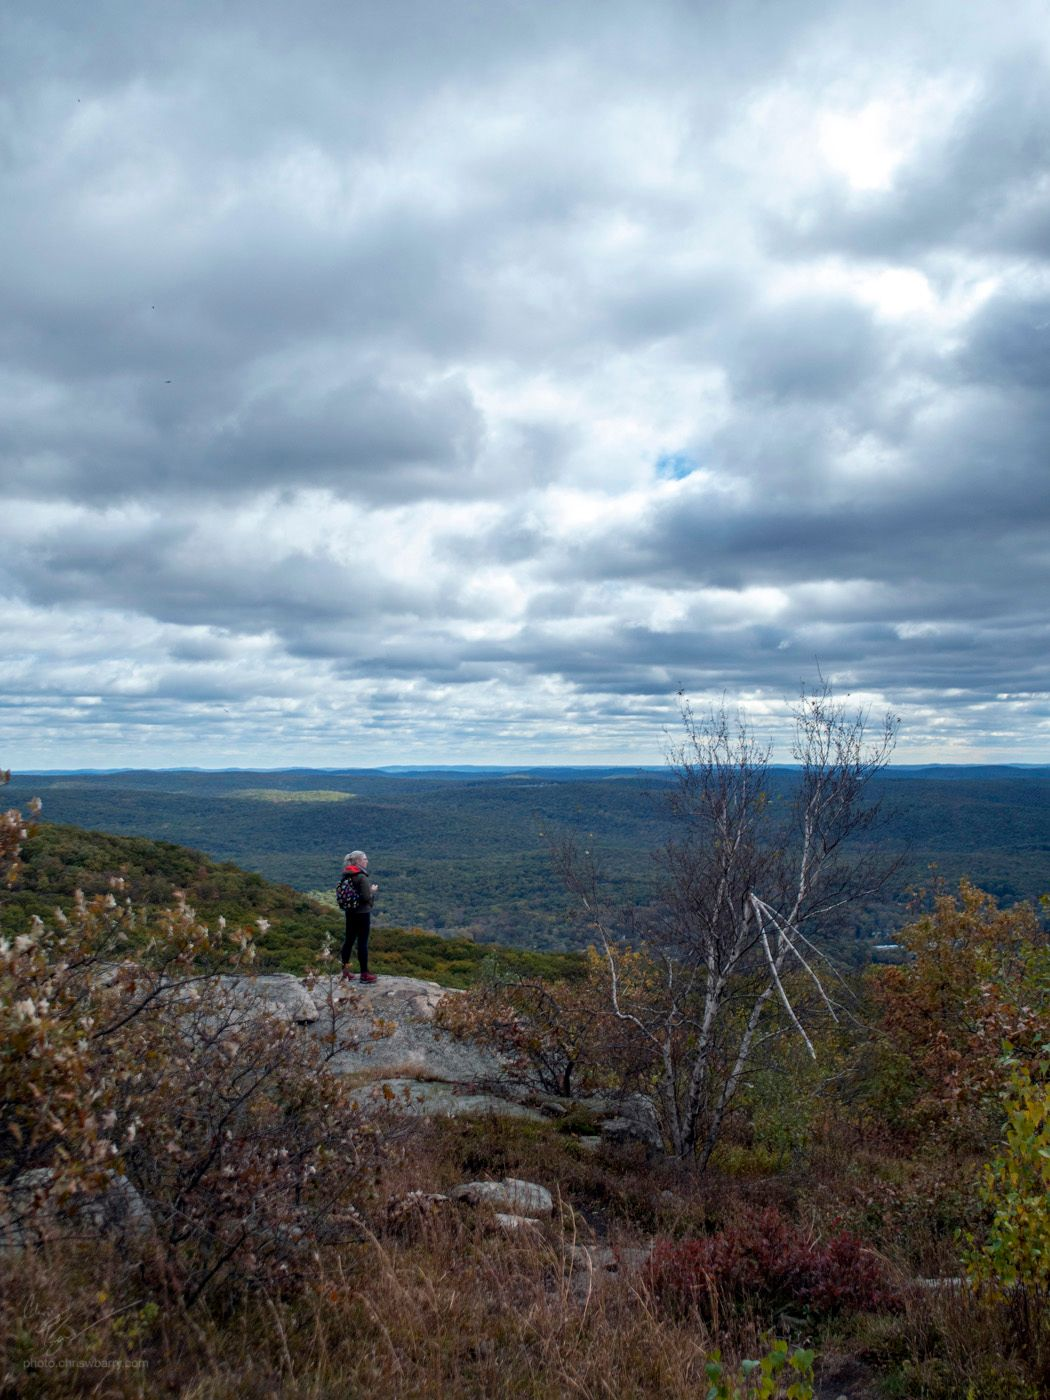 10-21-18: Top of the Mountain